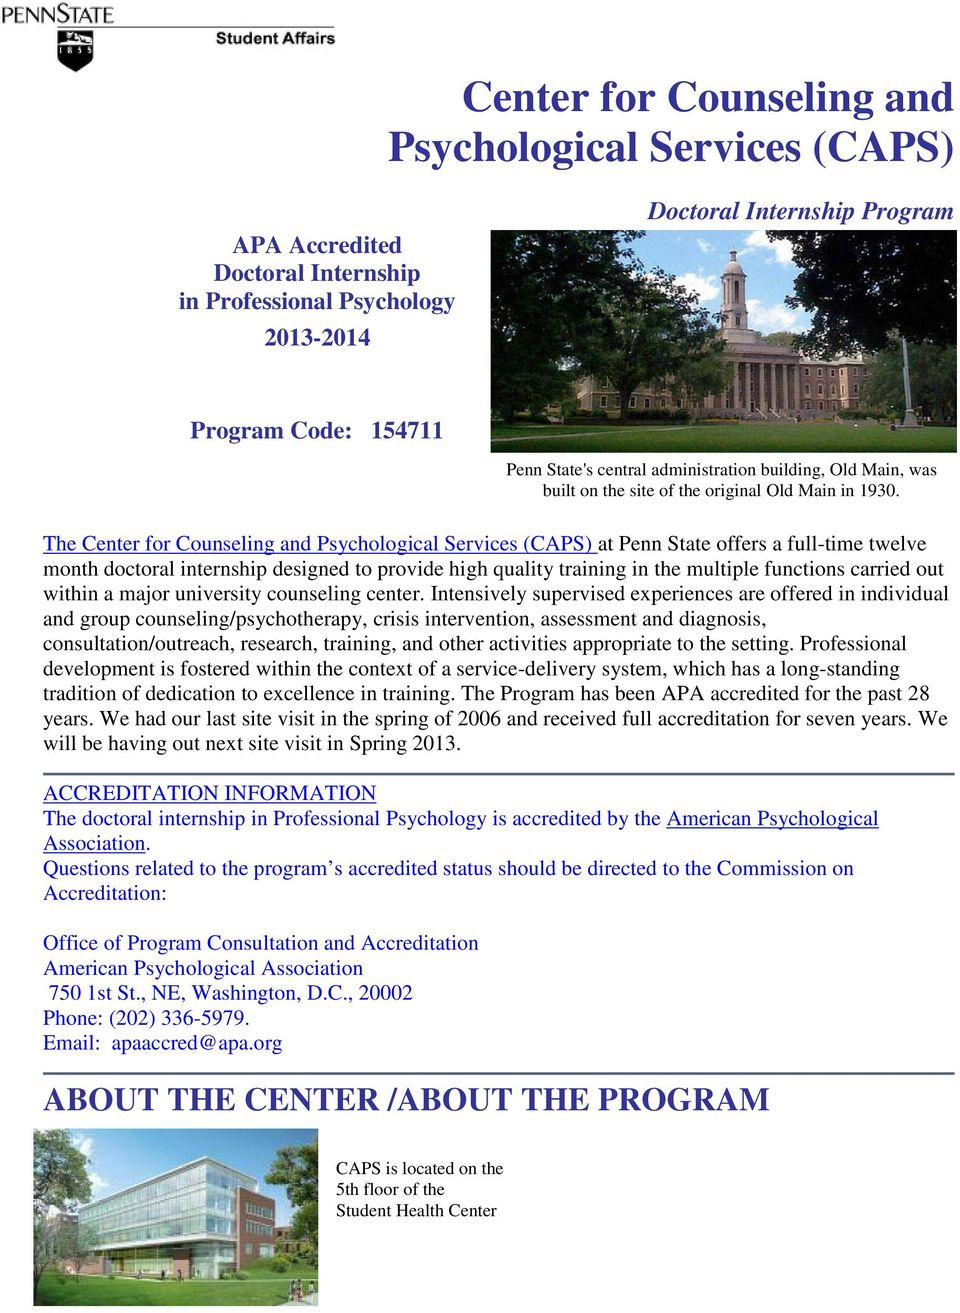 The Center for Counseling and Psychological Services (CAPS) at Penn State offers a full-time twelve month doctoral internship designed to provide high quality training in the multiple functions